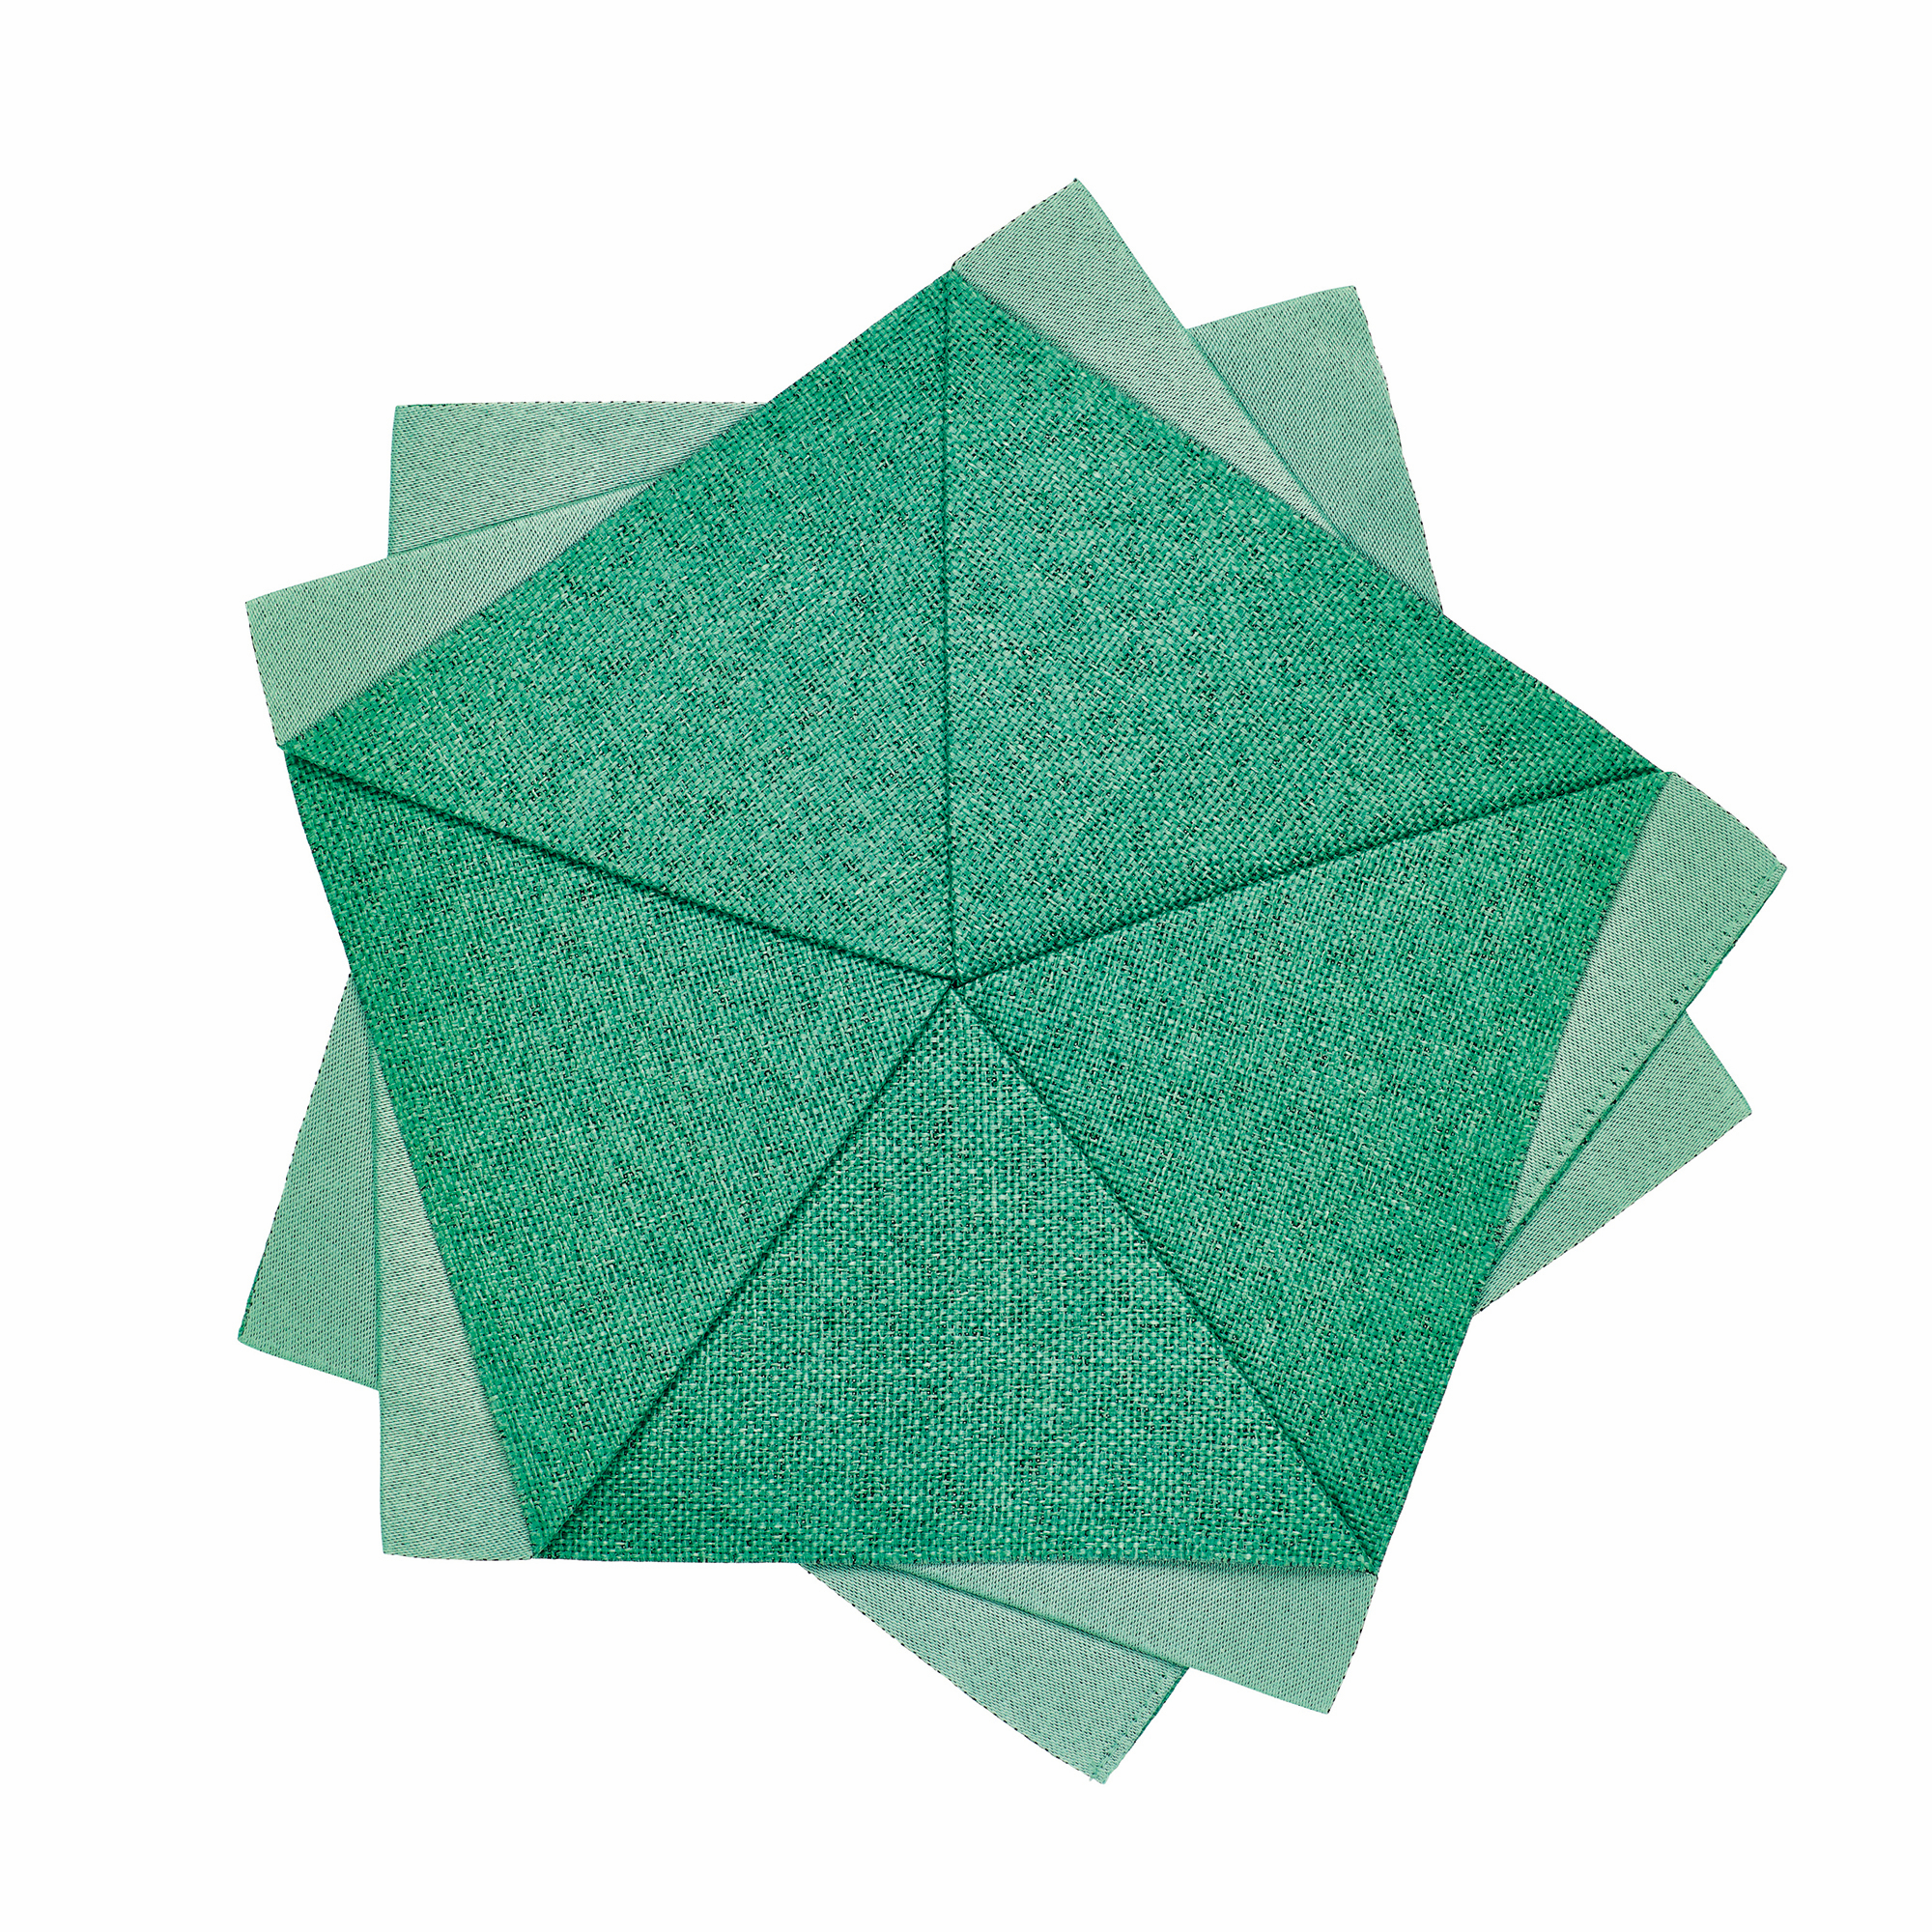 Iittala X Issey Miyake Medium Table Flower, Emerald